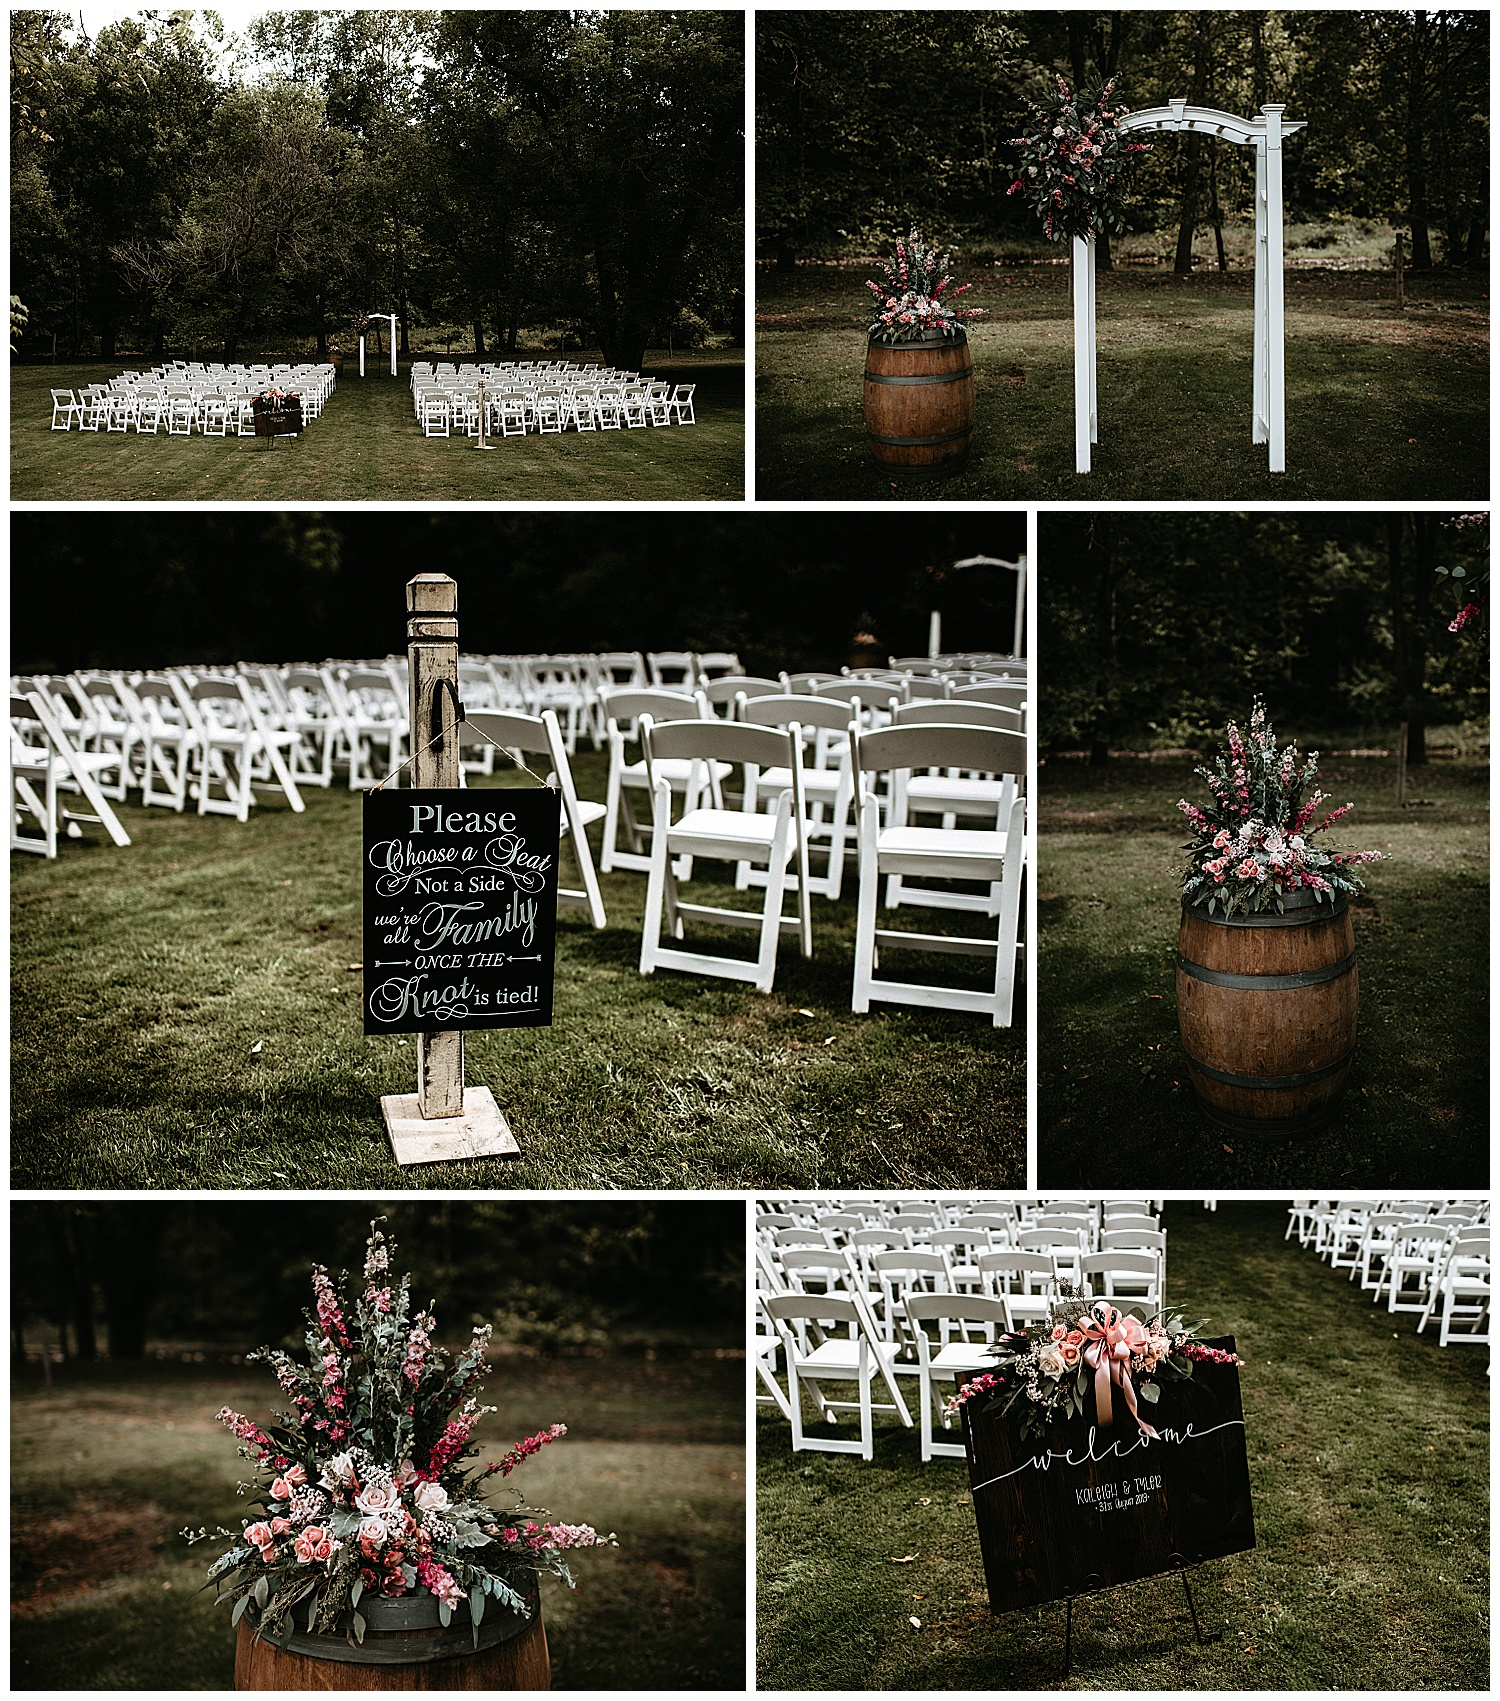 NEPA-Bloomgsburg-Wedding-Photographer-at-The-Barn-in-State-College-PA_0003.jpg